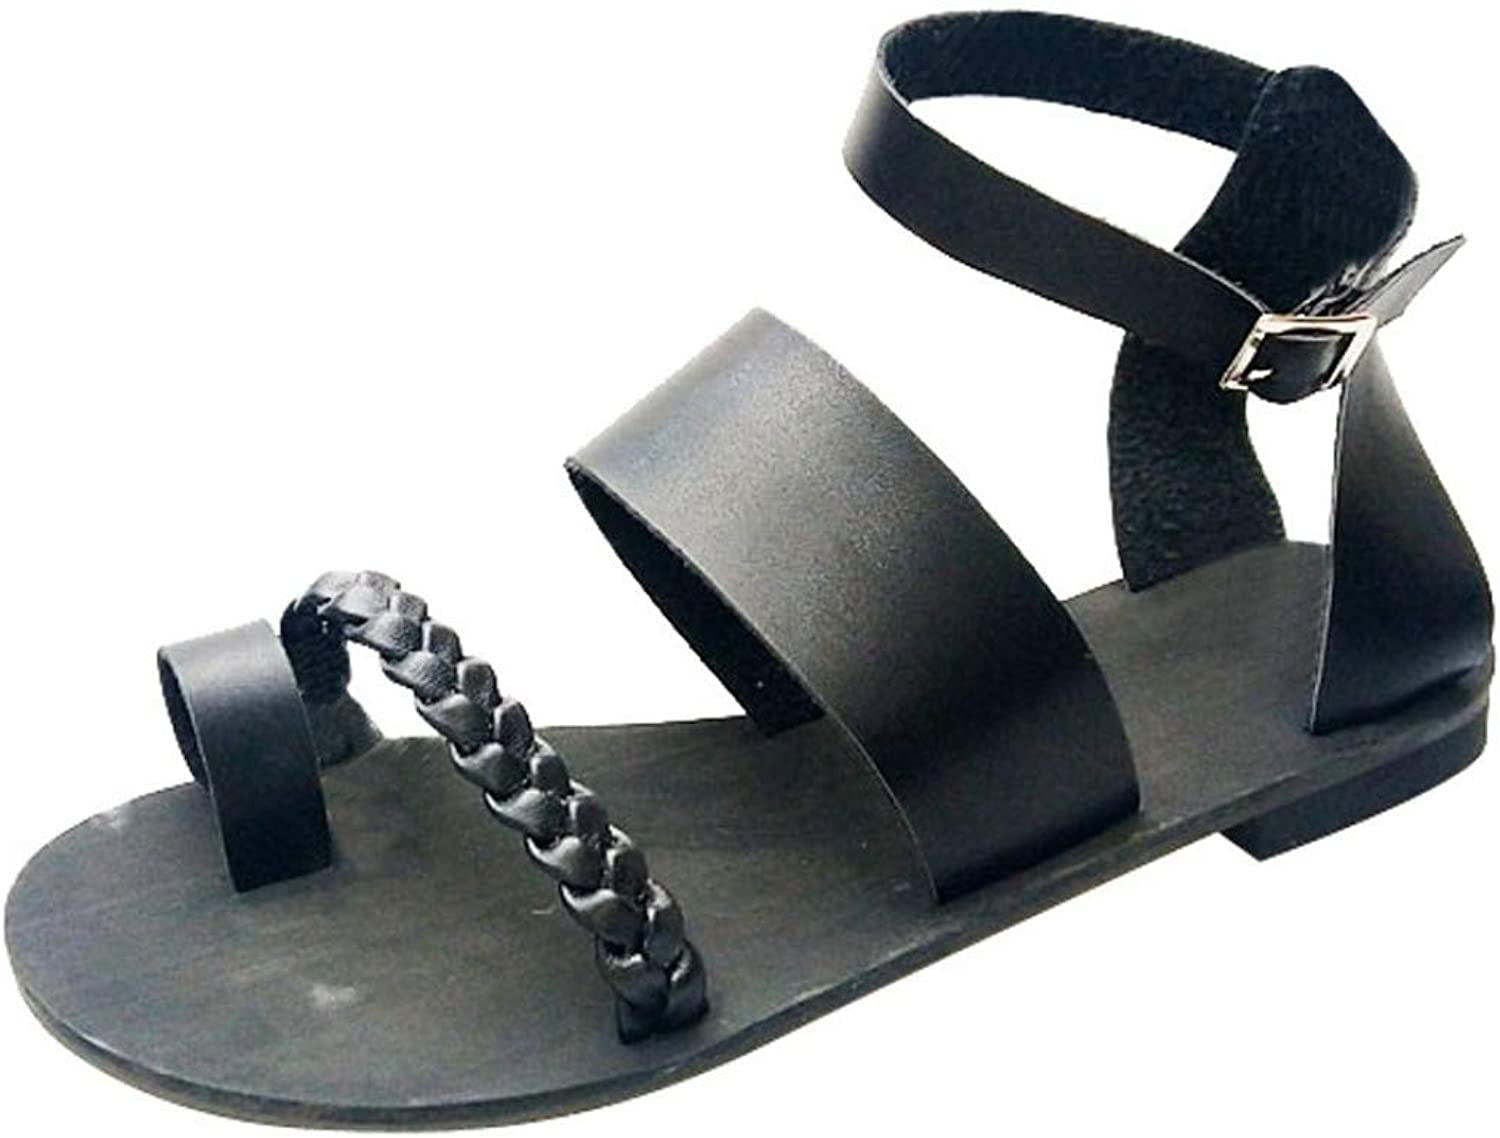 MEIZOKEN Womens Ankle Buckle Strap Sandals Soft PU Leather Clip Toe Summer Beach Thong Flats Sandals